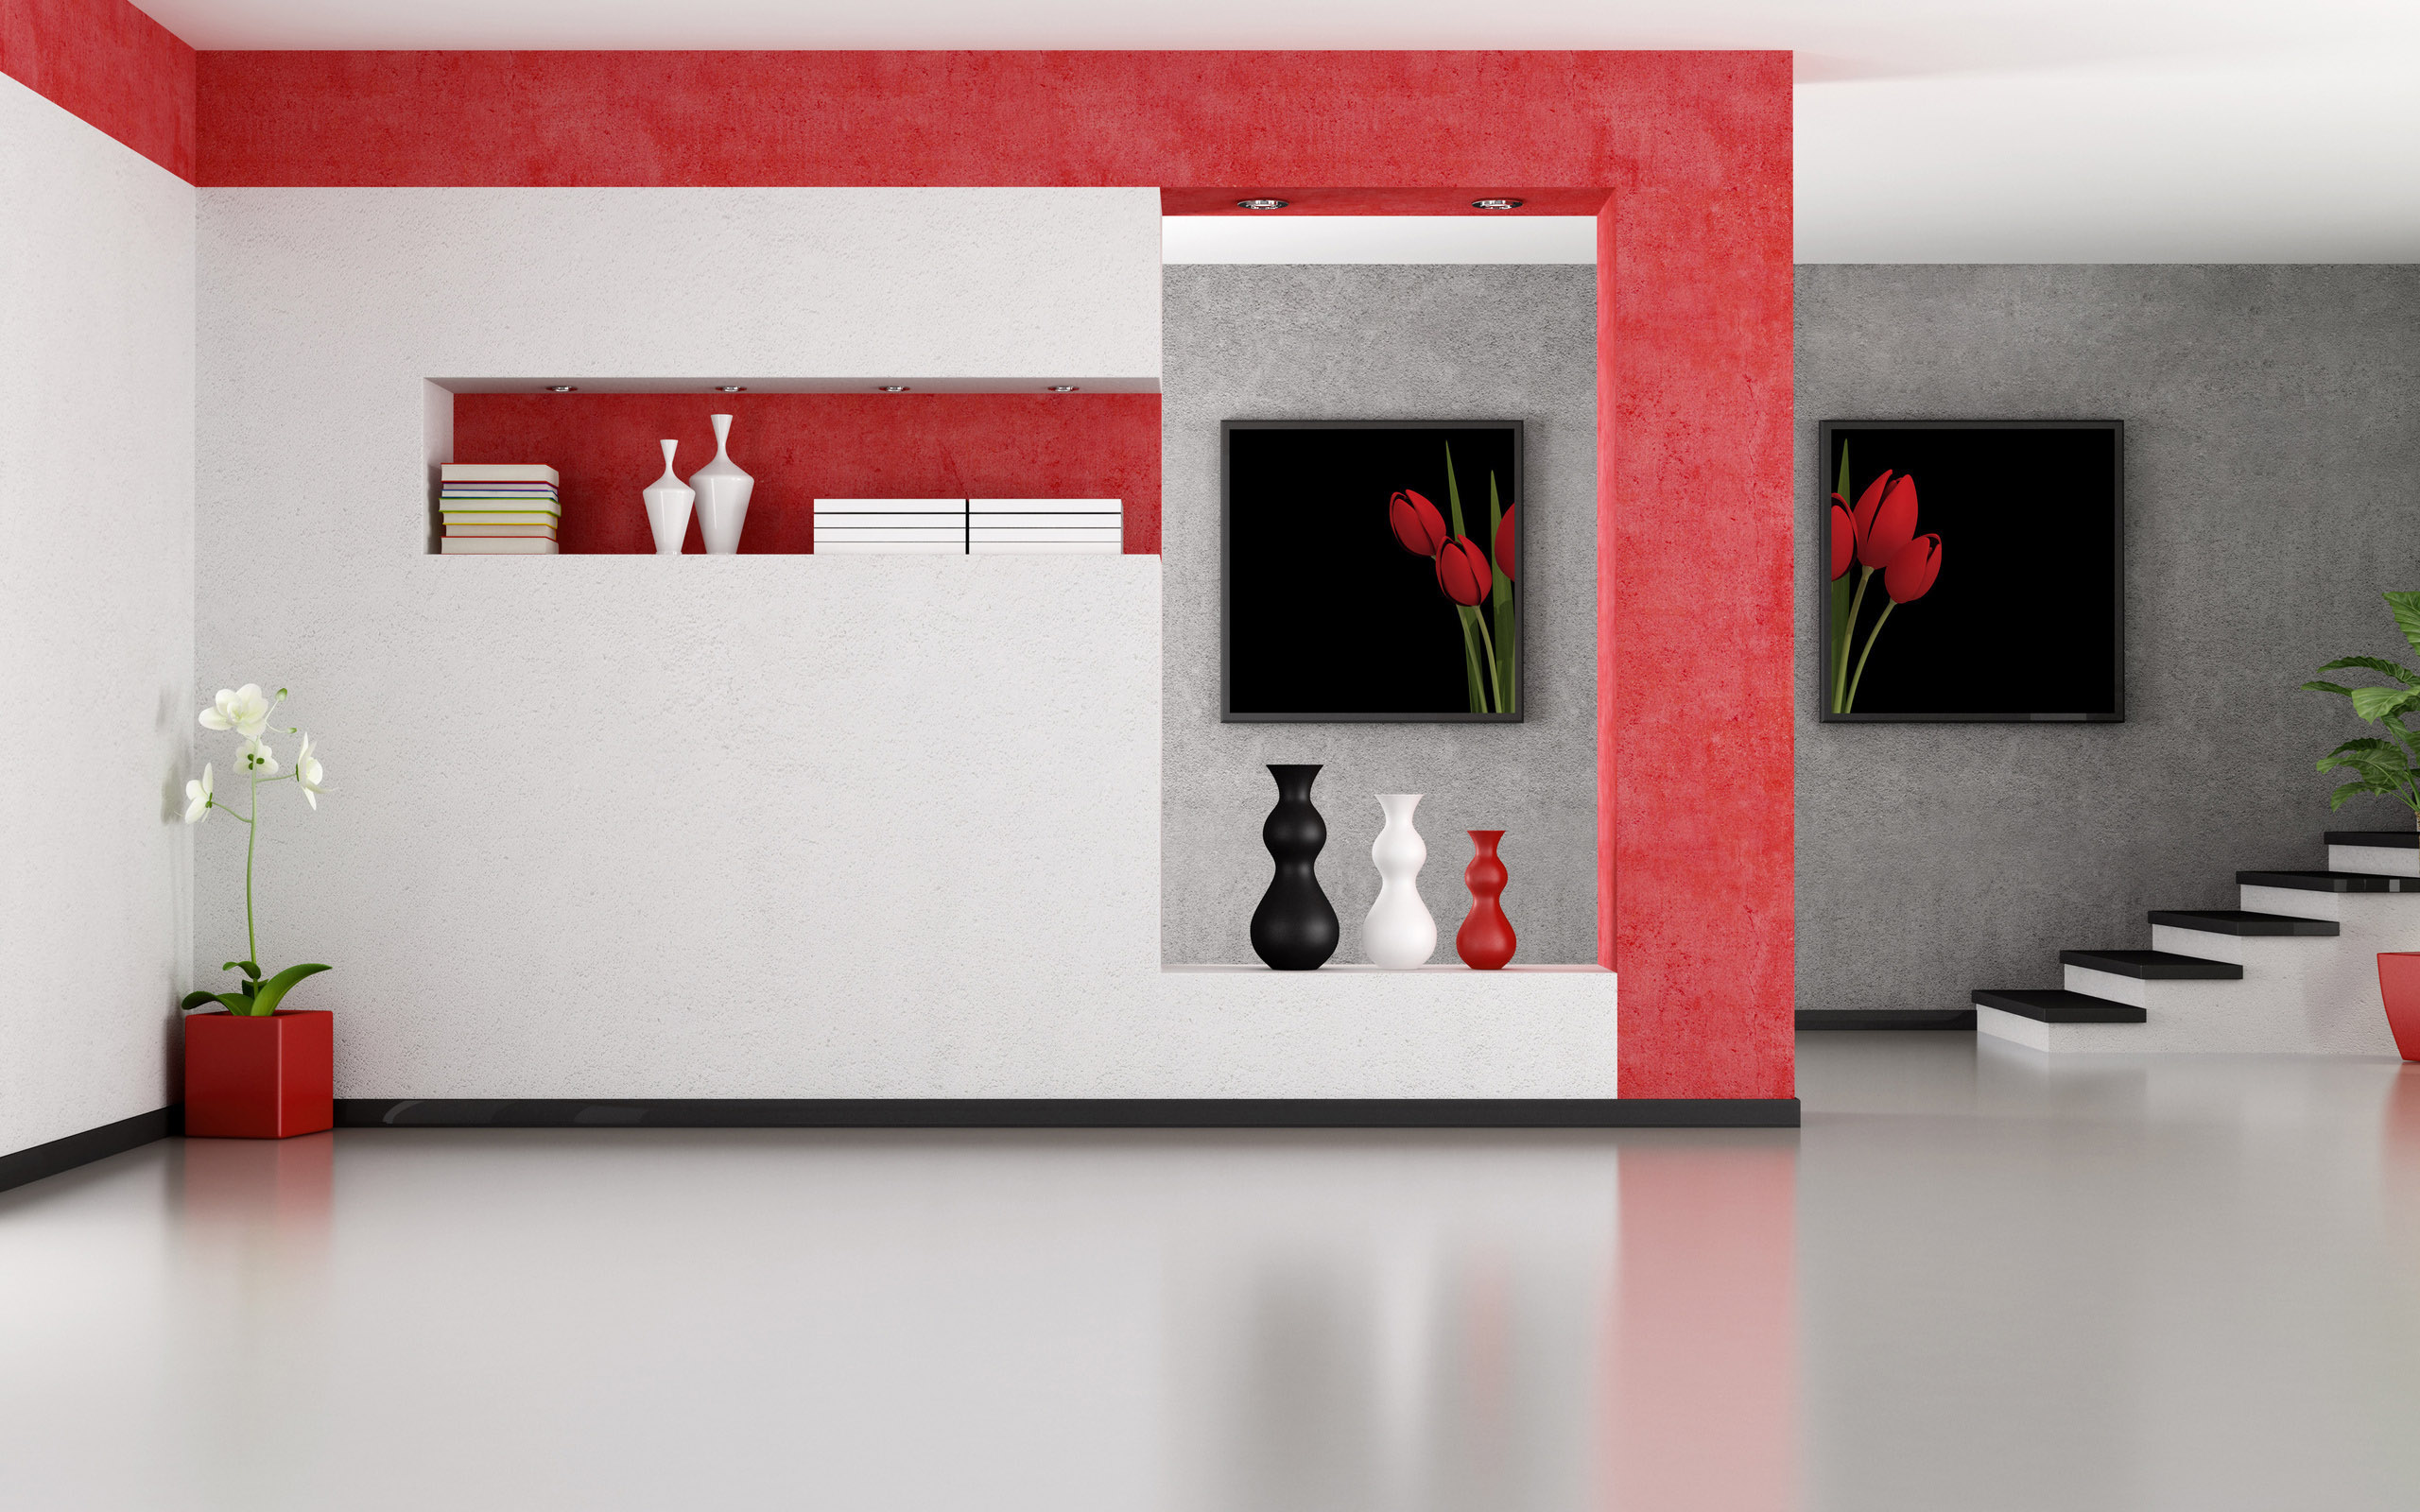 Minimalist-Red-And-White-Interior-Design-Wallpaper